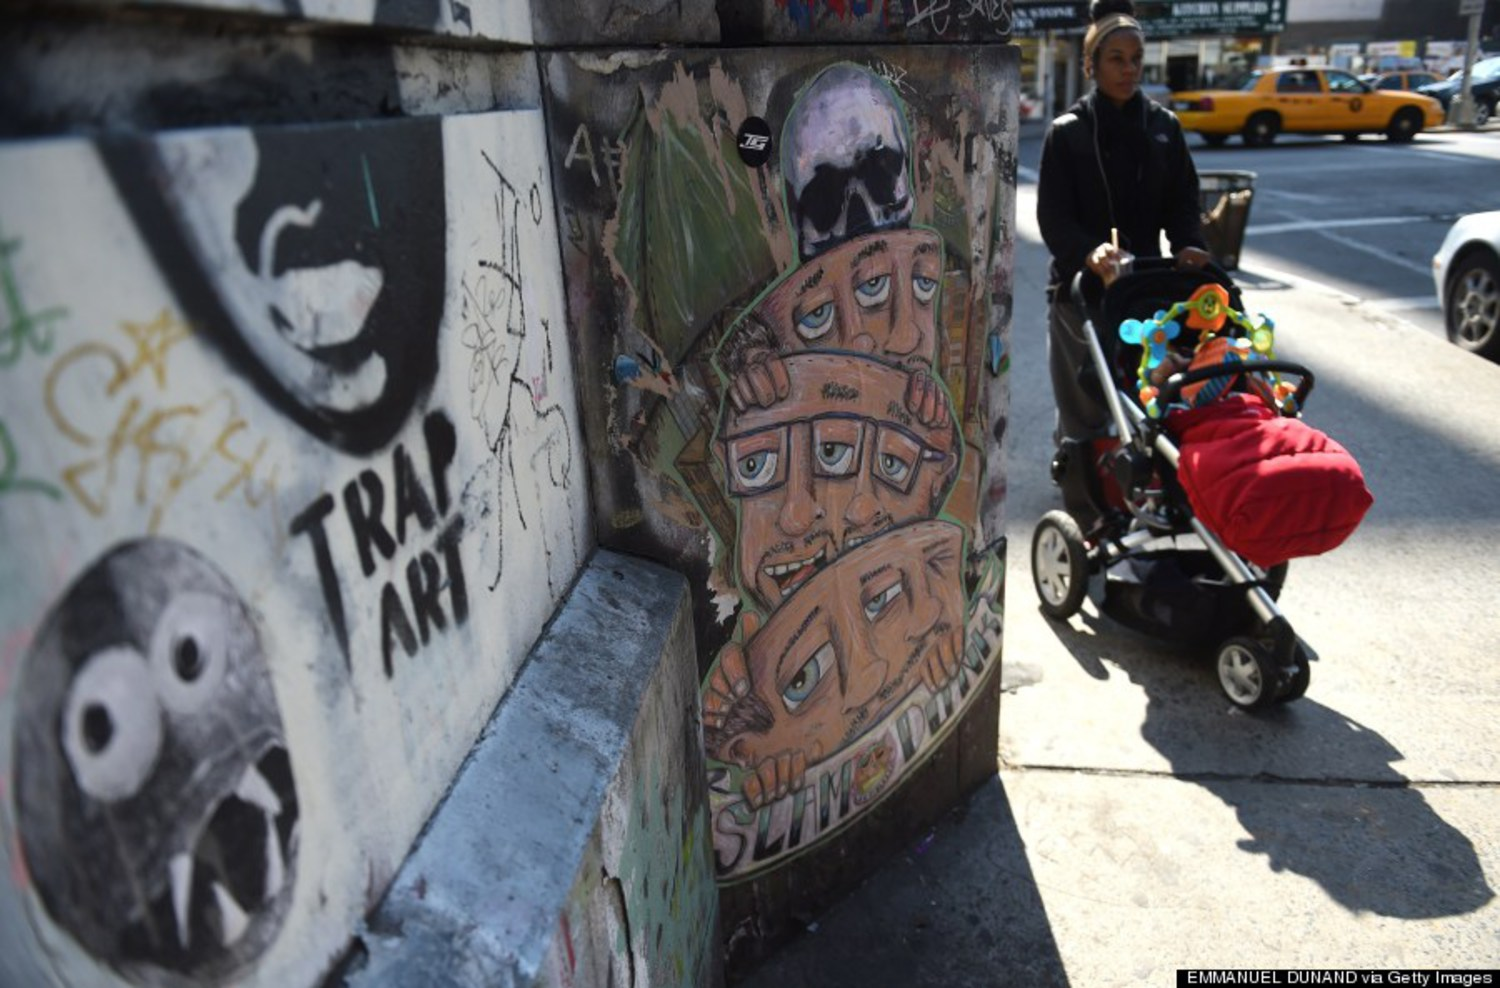 People walk by street graffti in New York on April 25, 2014.